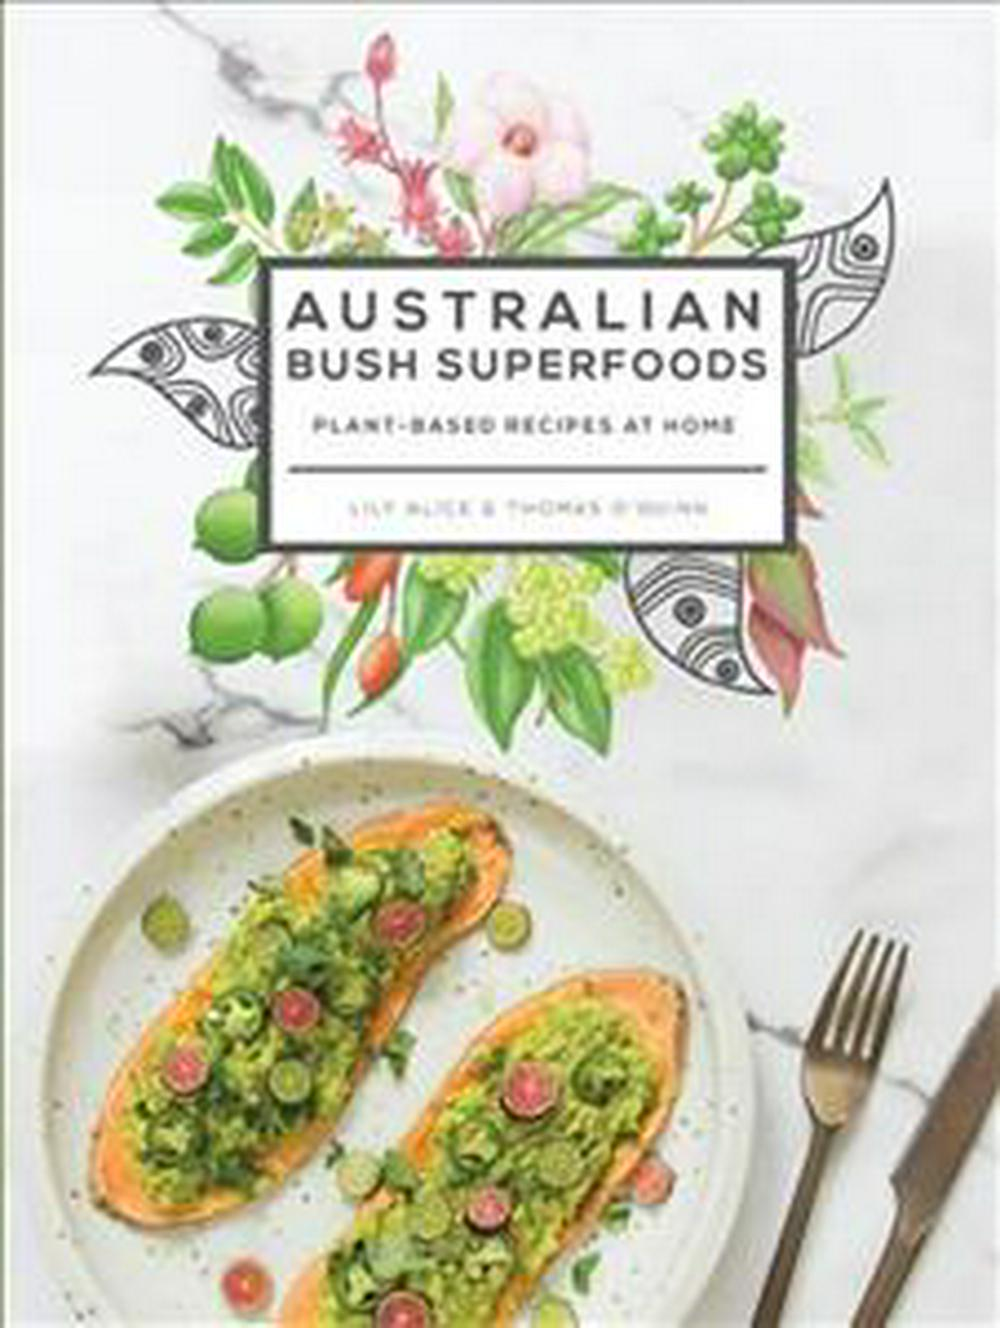 Australian Bush Superfoods by Lily Alice,Thomas O'Quinn, ISBN: 9781741175400